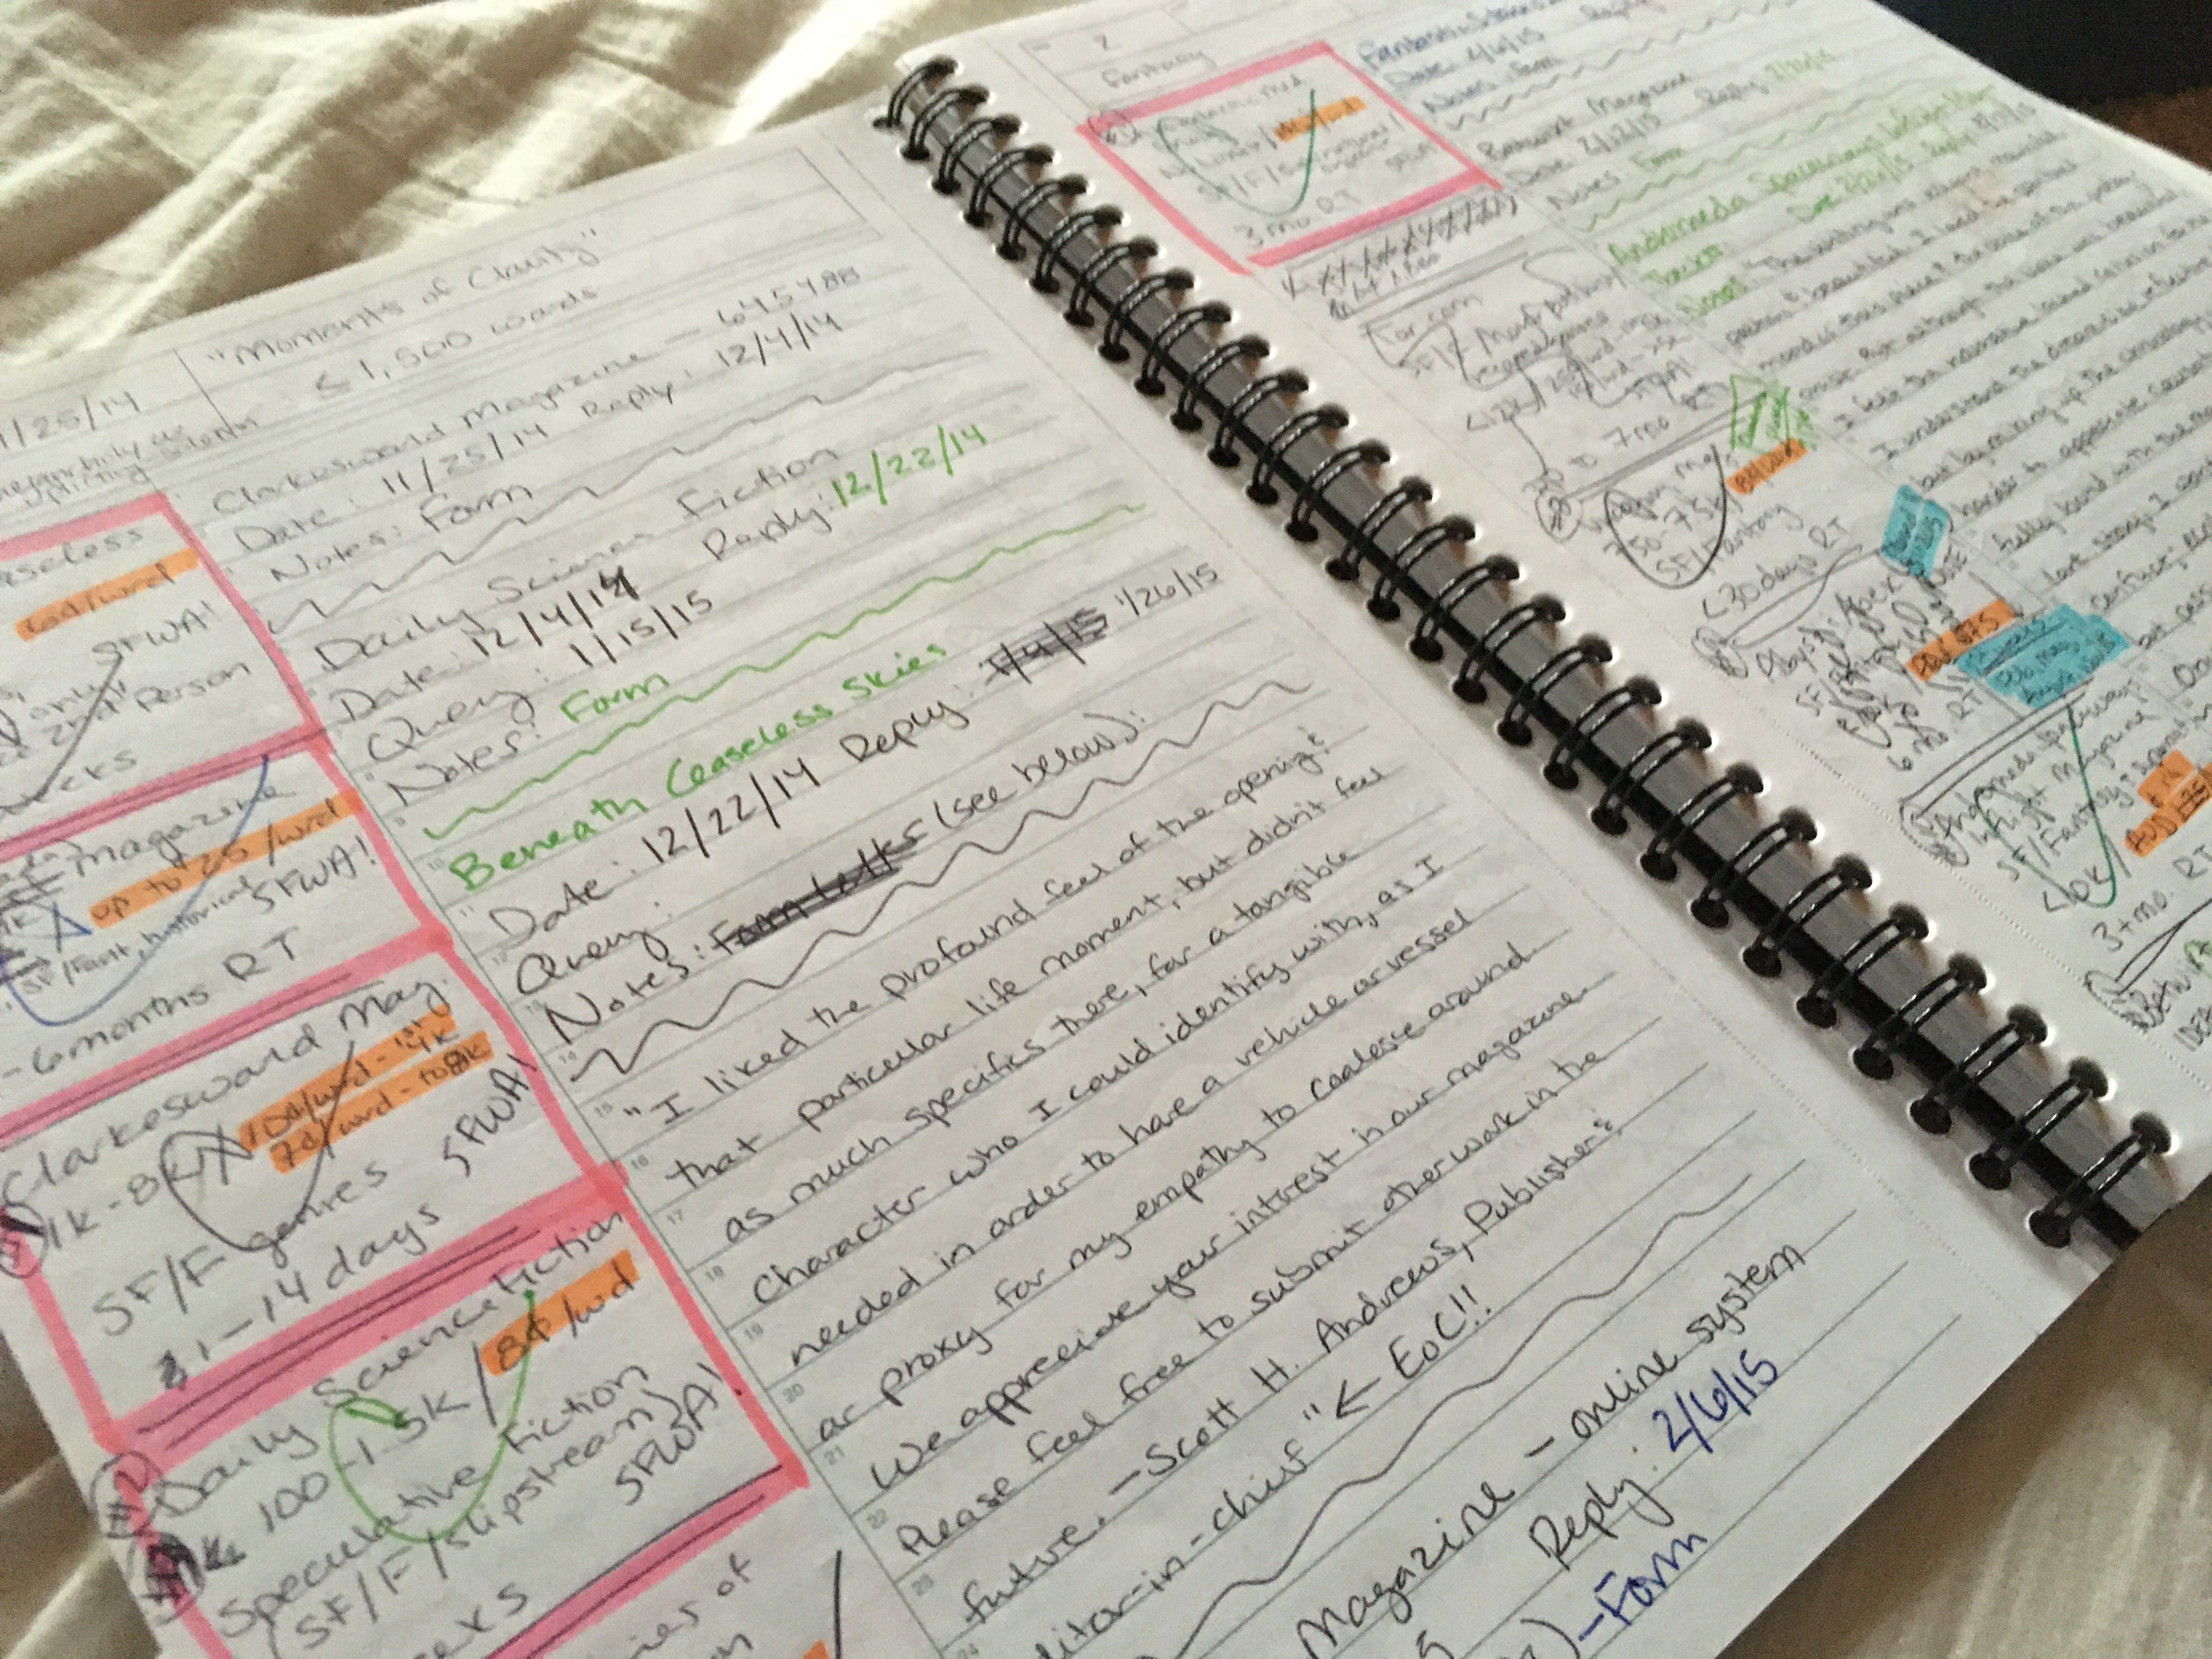 Scribbling, chaotic, multi-color notes.